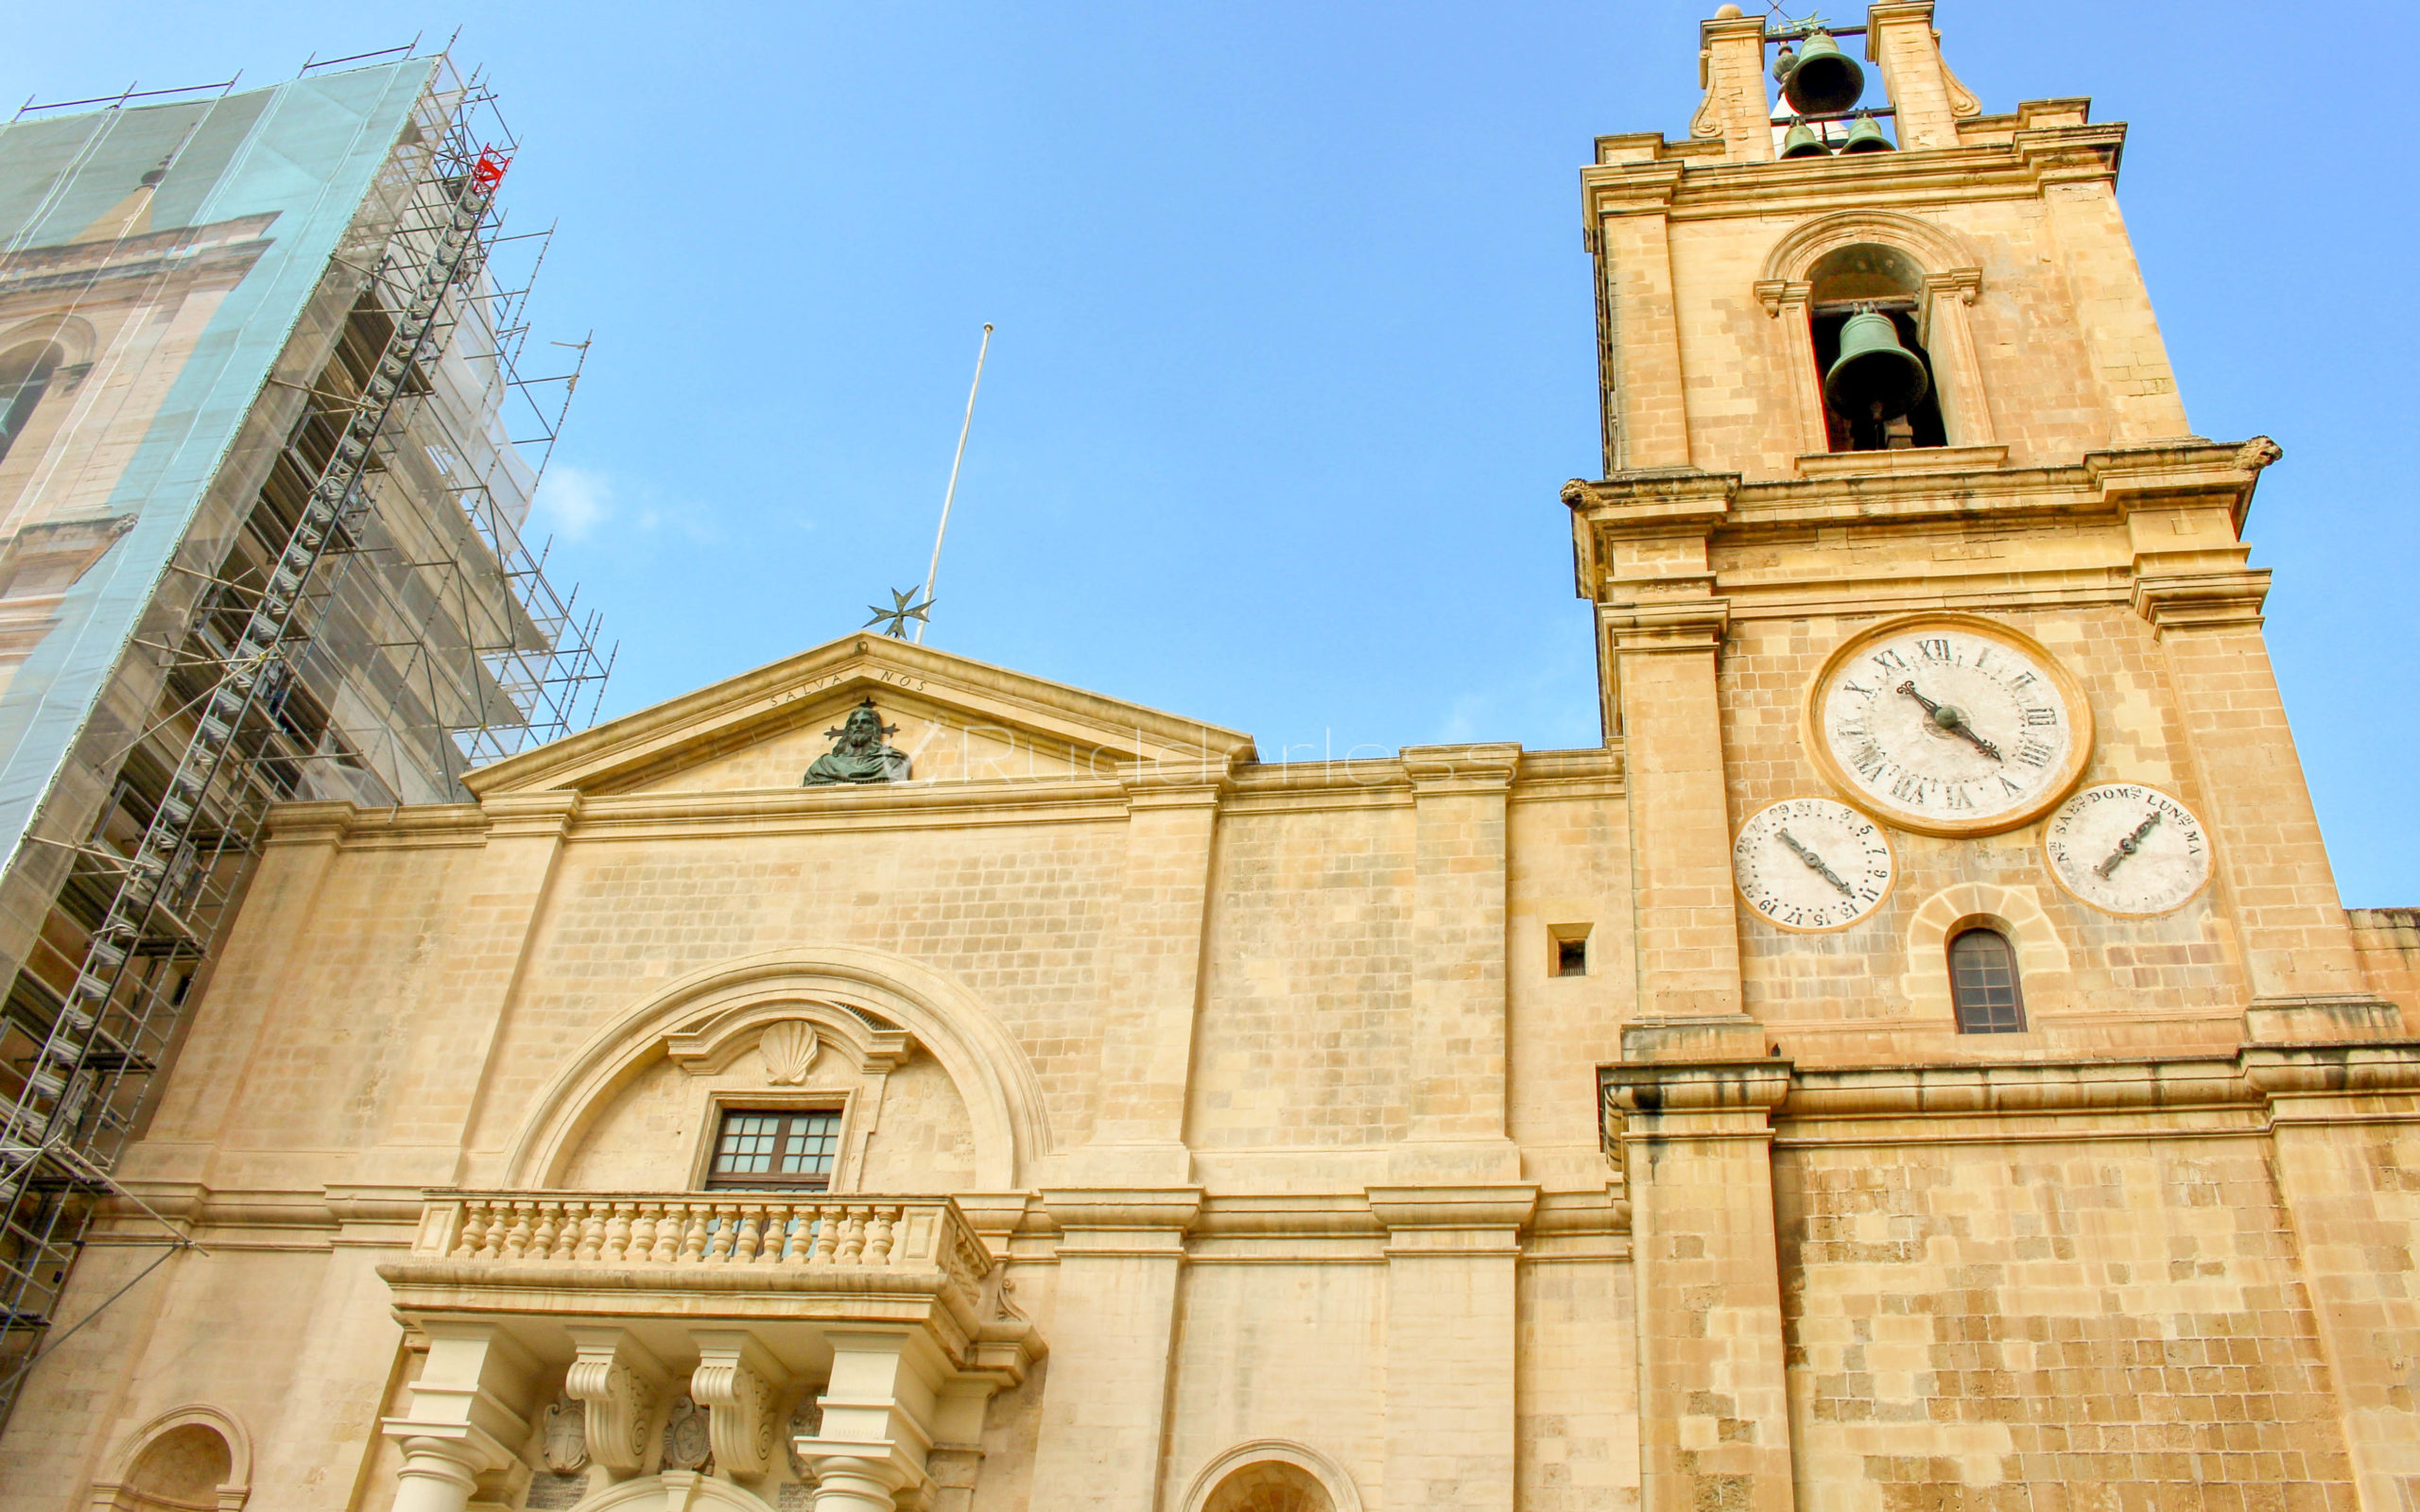 places to visit in valletta - ST. JOHN'S CO-CATHEDRAL